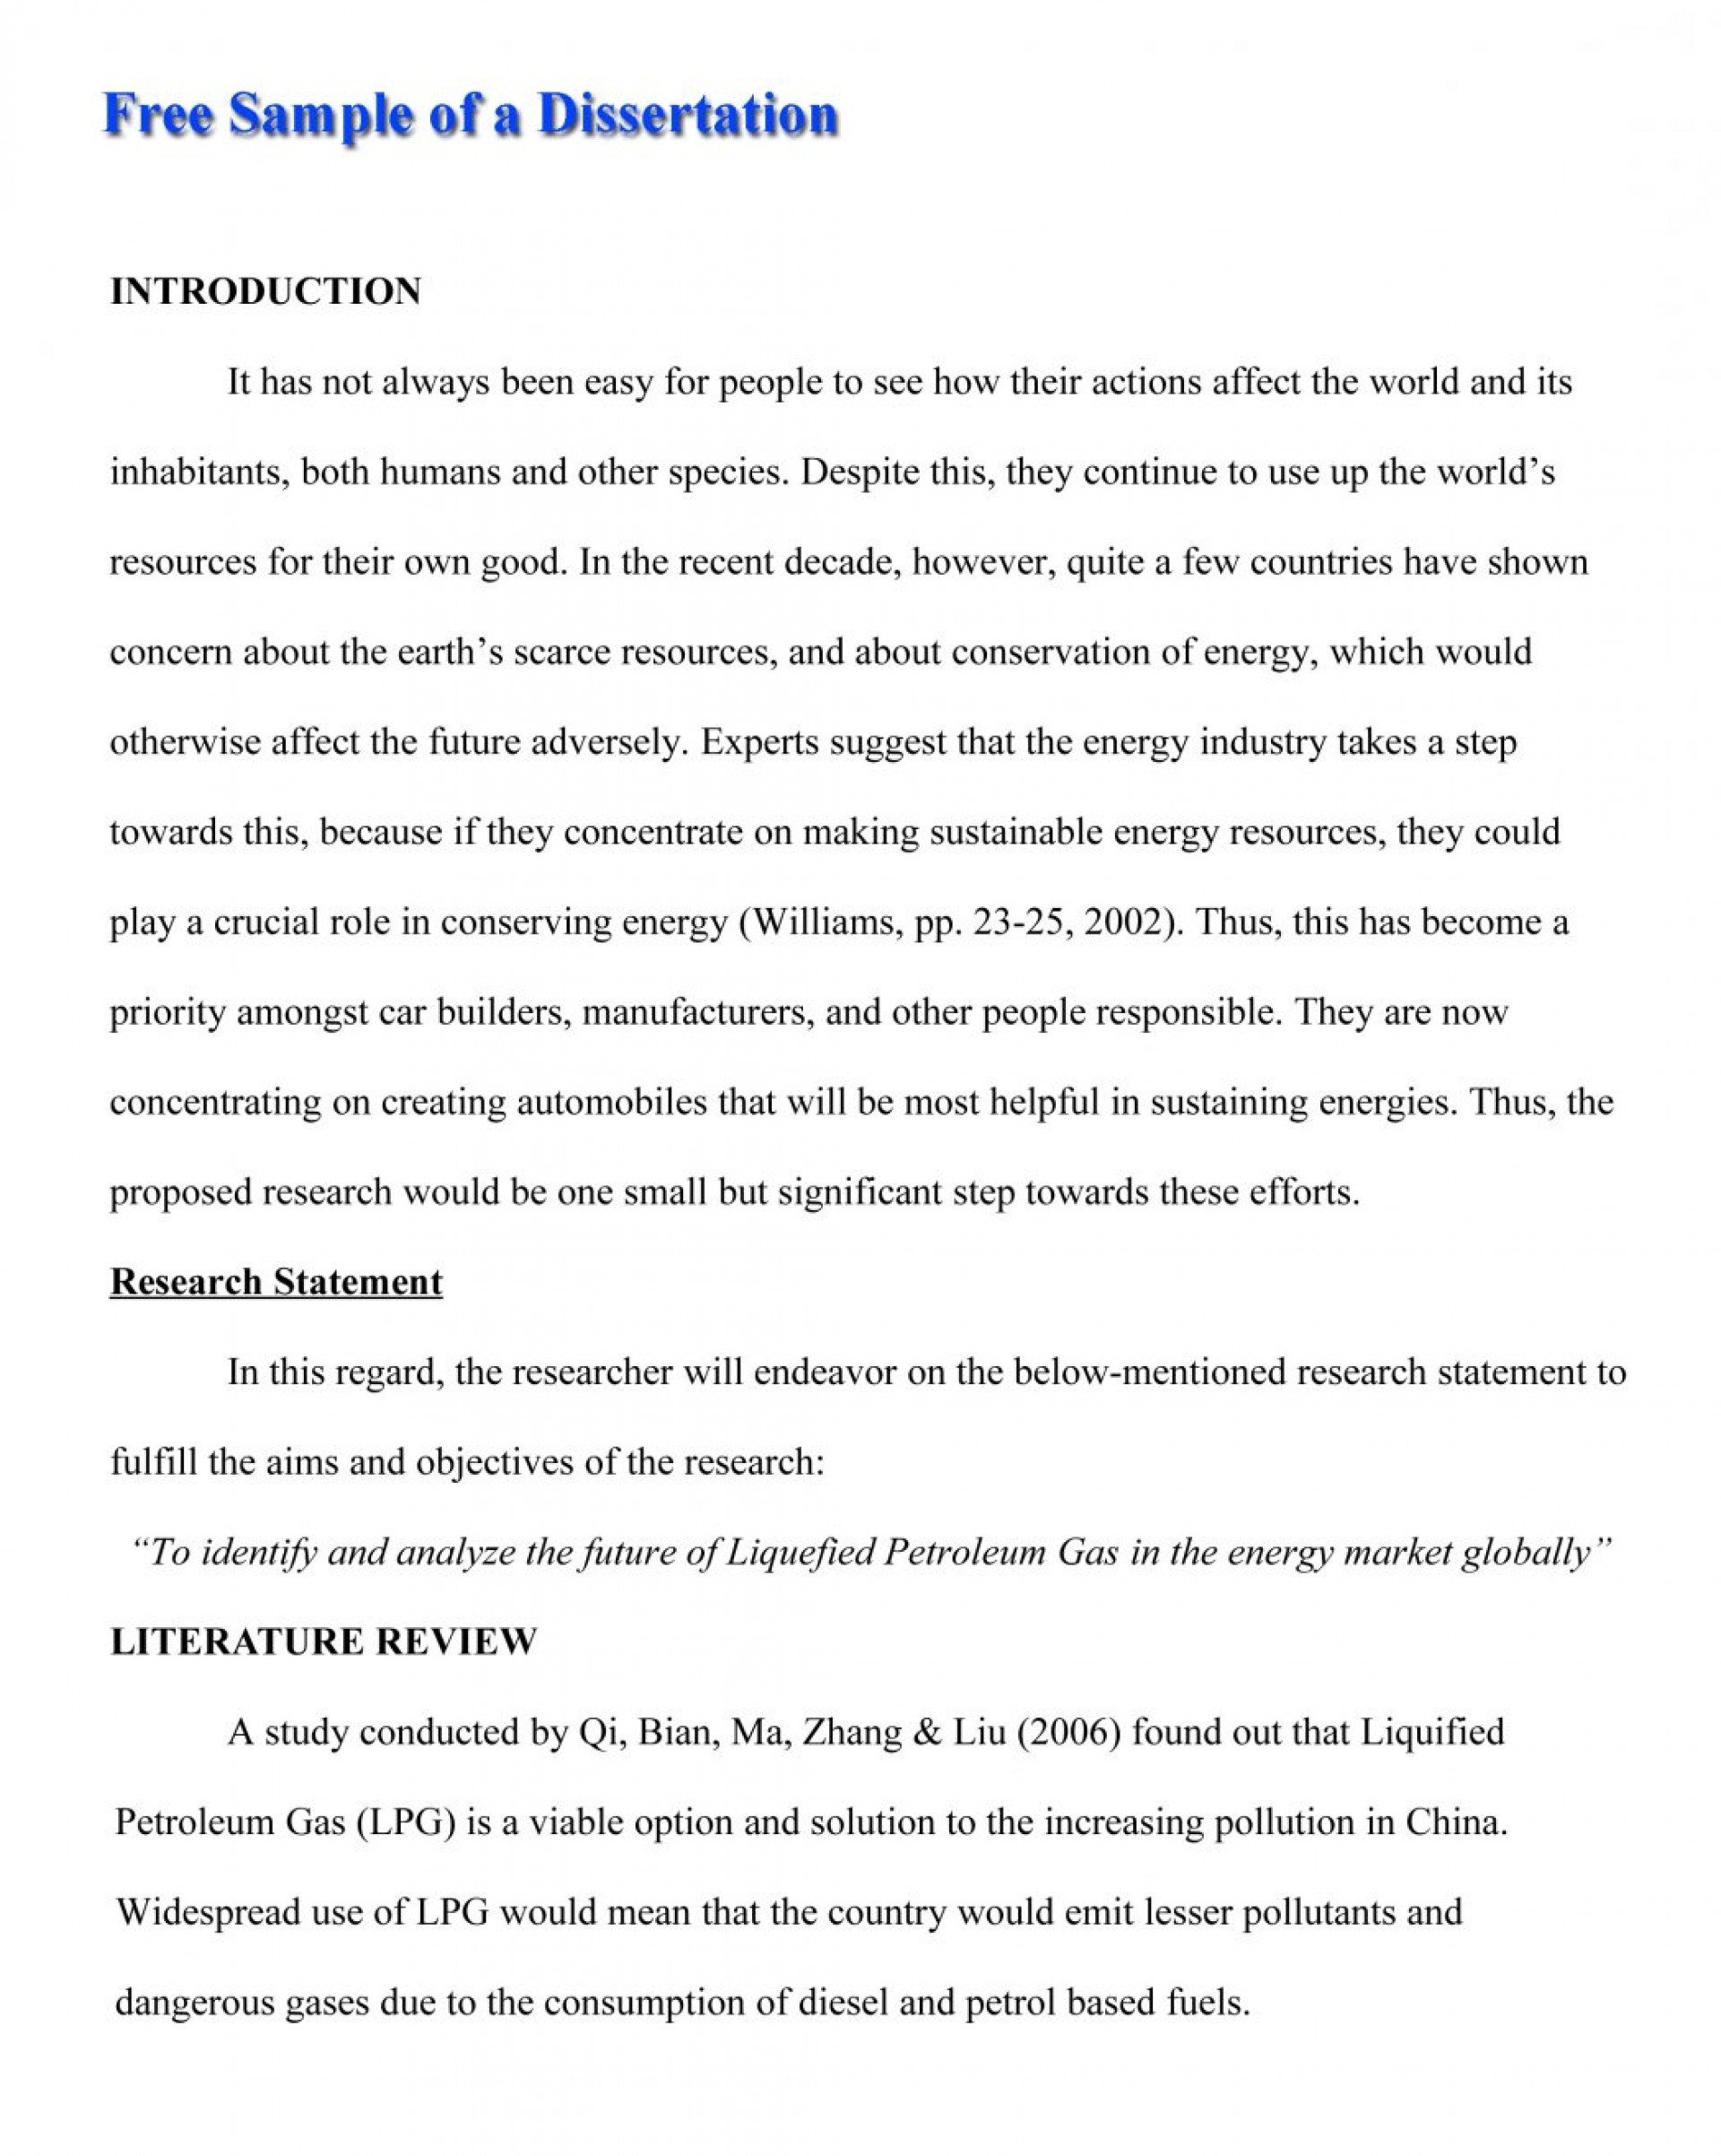 001 How To Write Comparative Essay Analysis Thesis Poetry Introduction Dissertation Free S Vce Contrast Example Comparison Incredible A Compare 1920